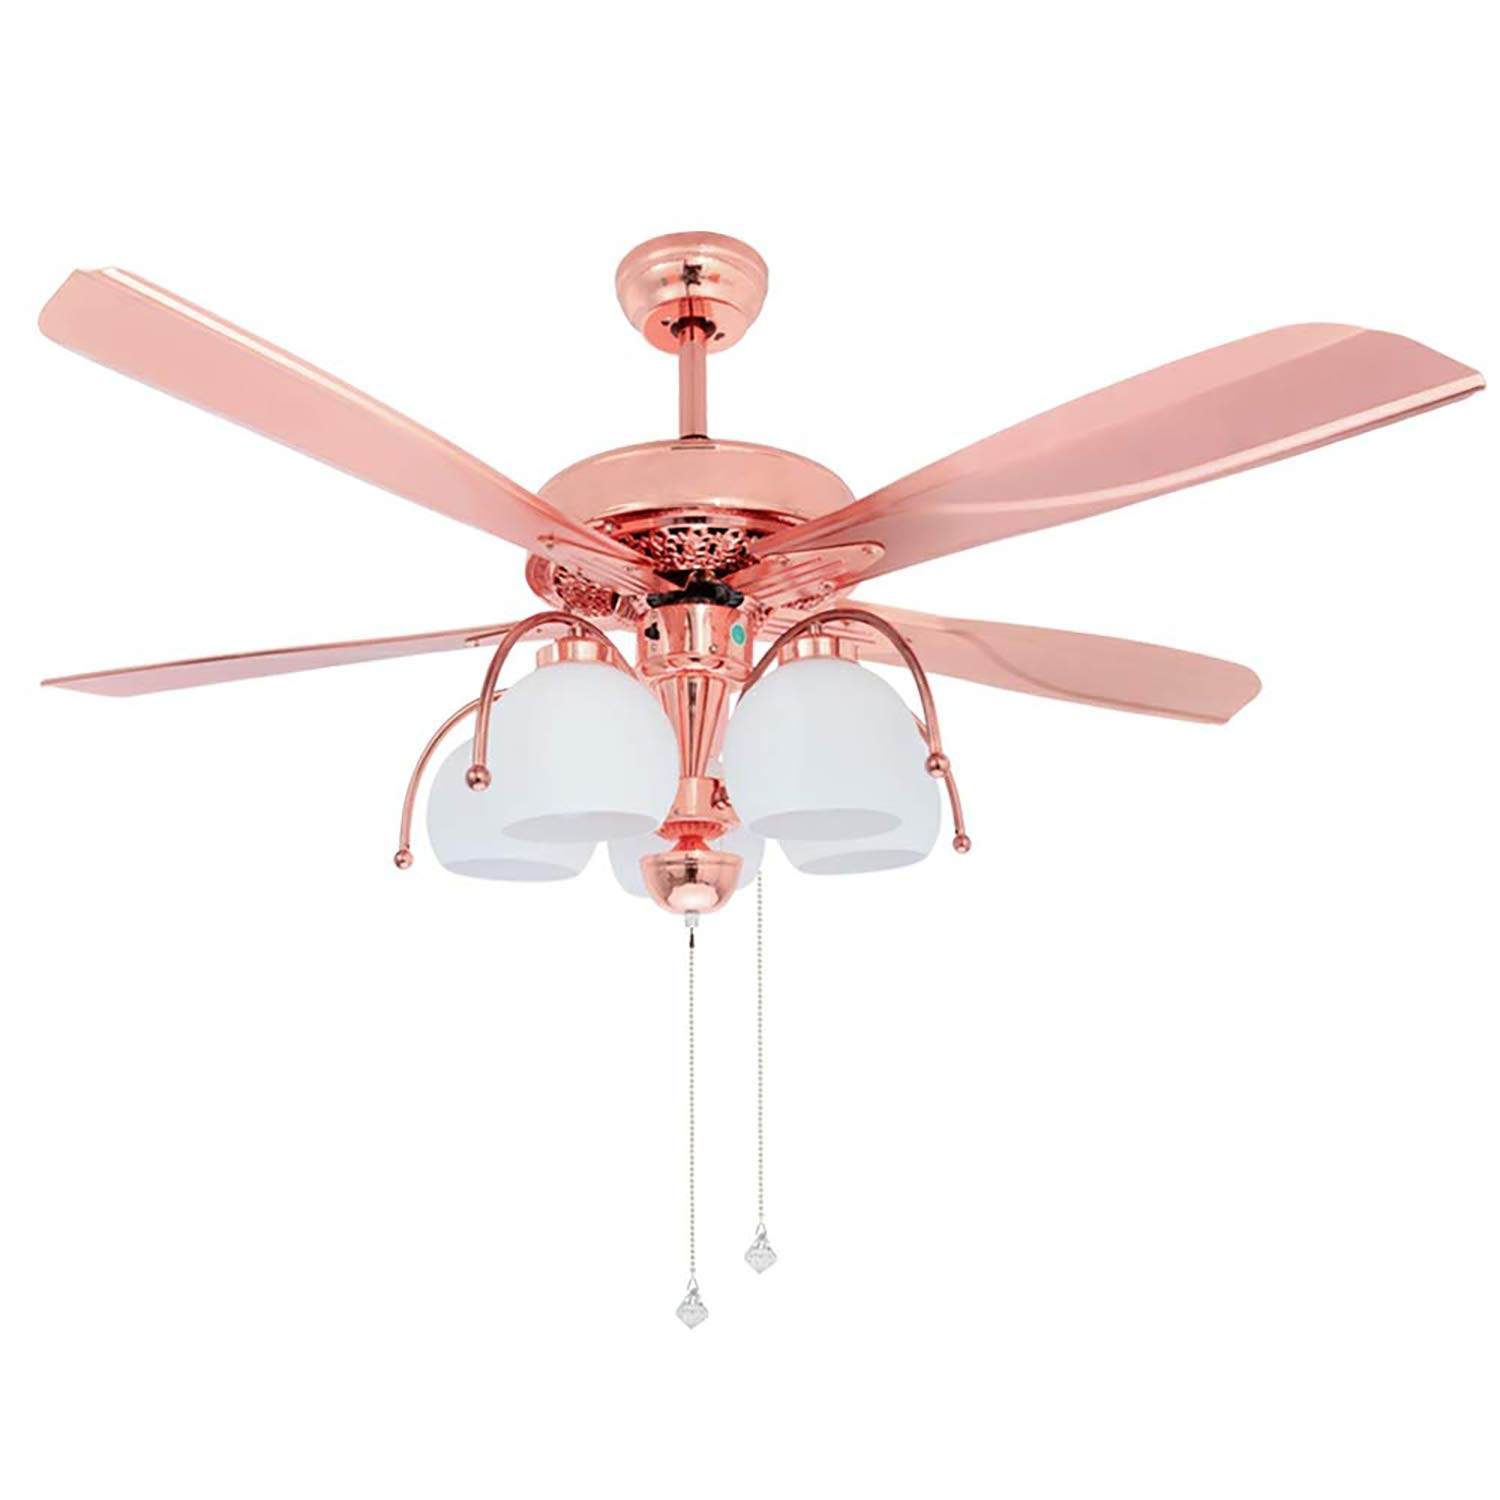 Tropicalfan Metal Ceiling Fan With Remote Control 5 Glass Light Cover Home Decoration Living Room Bedroom 5 Reversible Blades Quiet Fans Chandelier Rose Gold 5 Lights